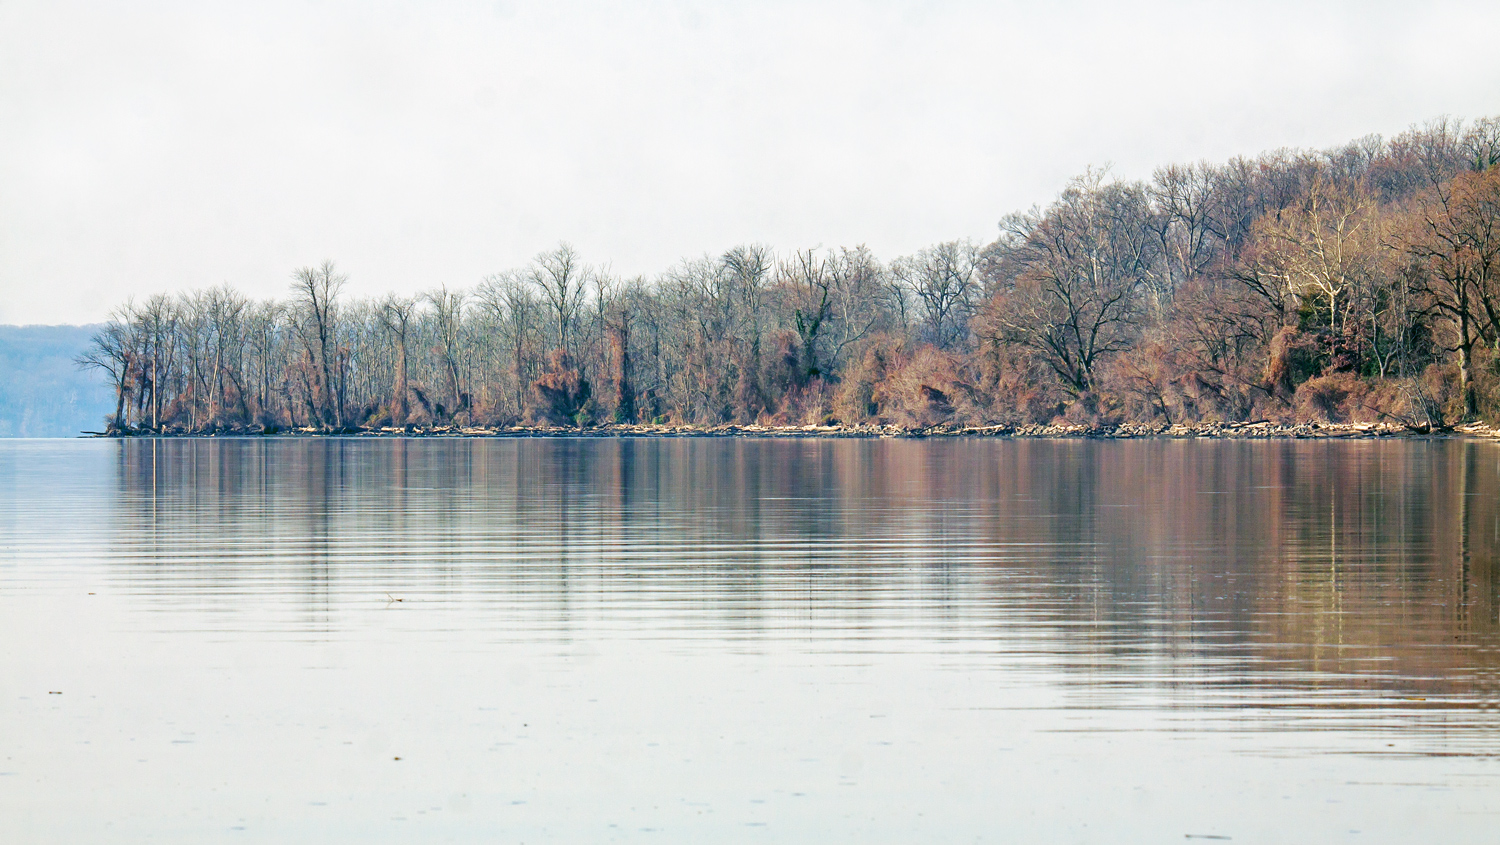 Early morning on the potomac river mike powell for Potomac river fishing